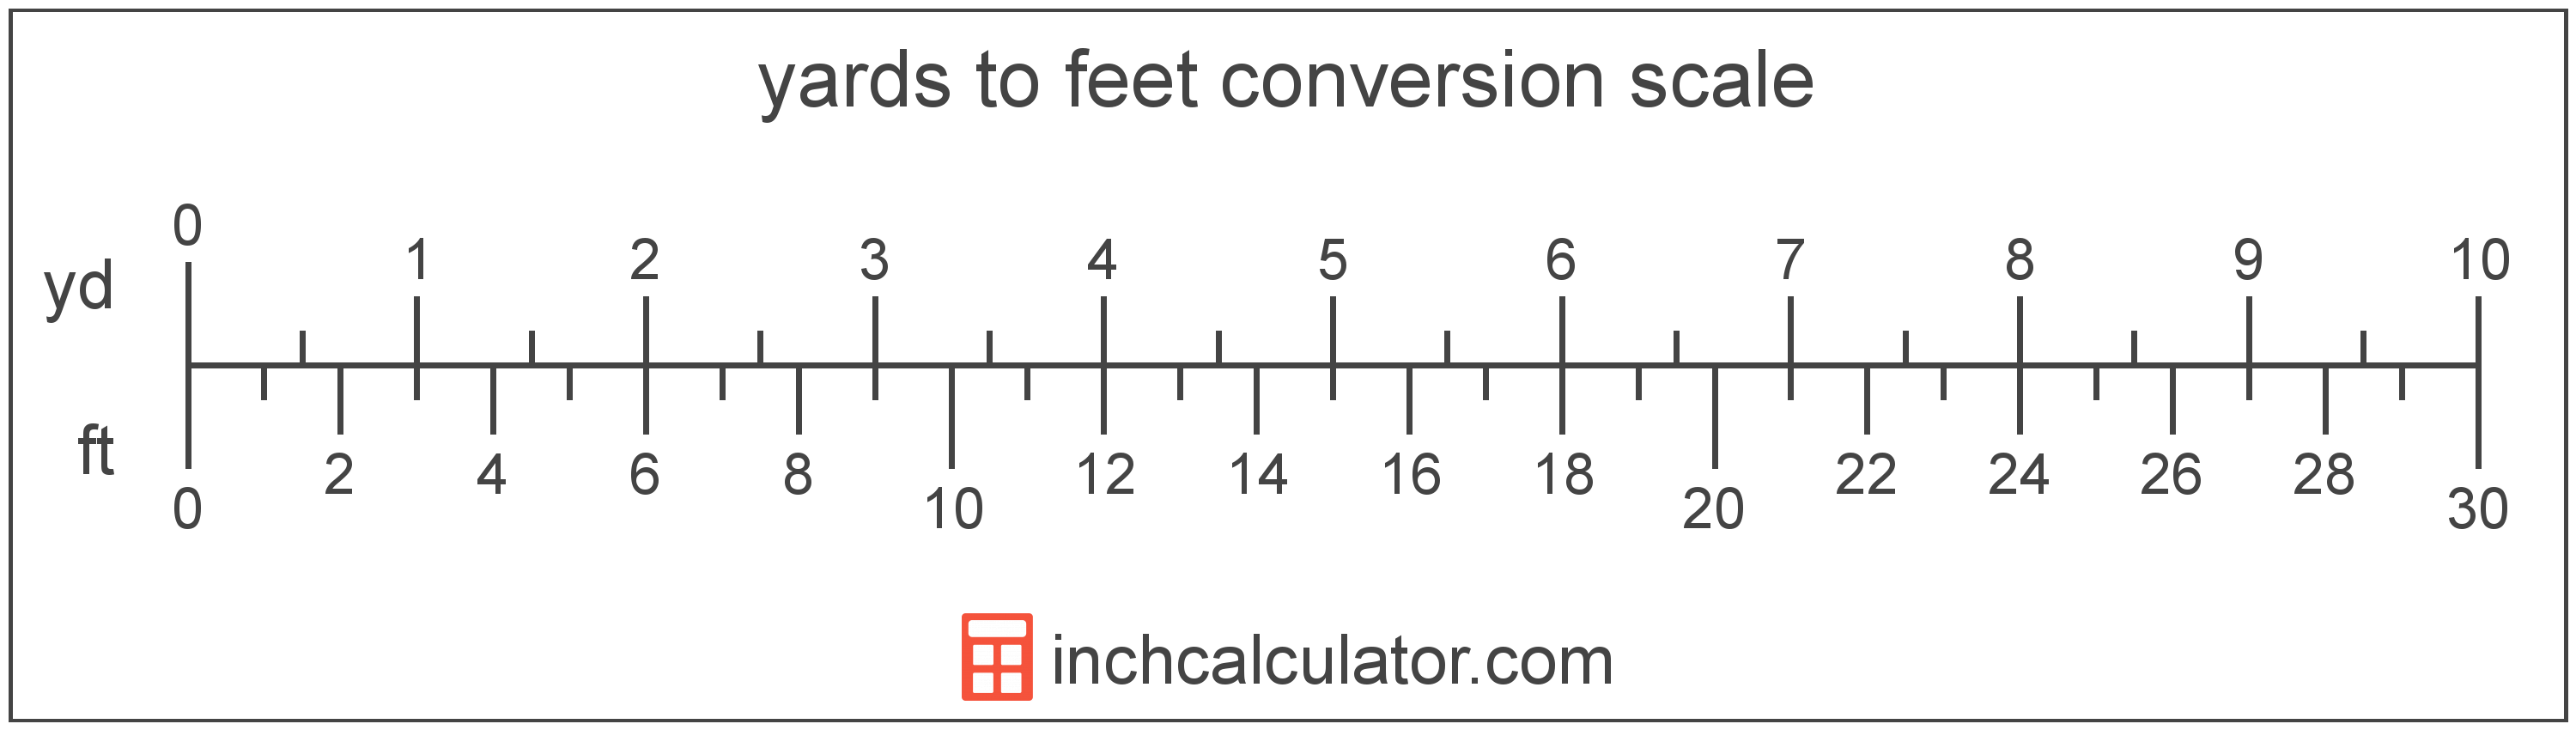 conversion scale showing yards and equivalent feet length values